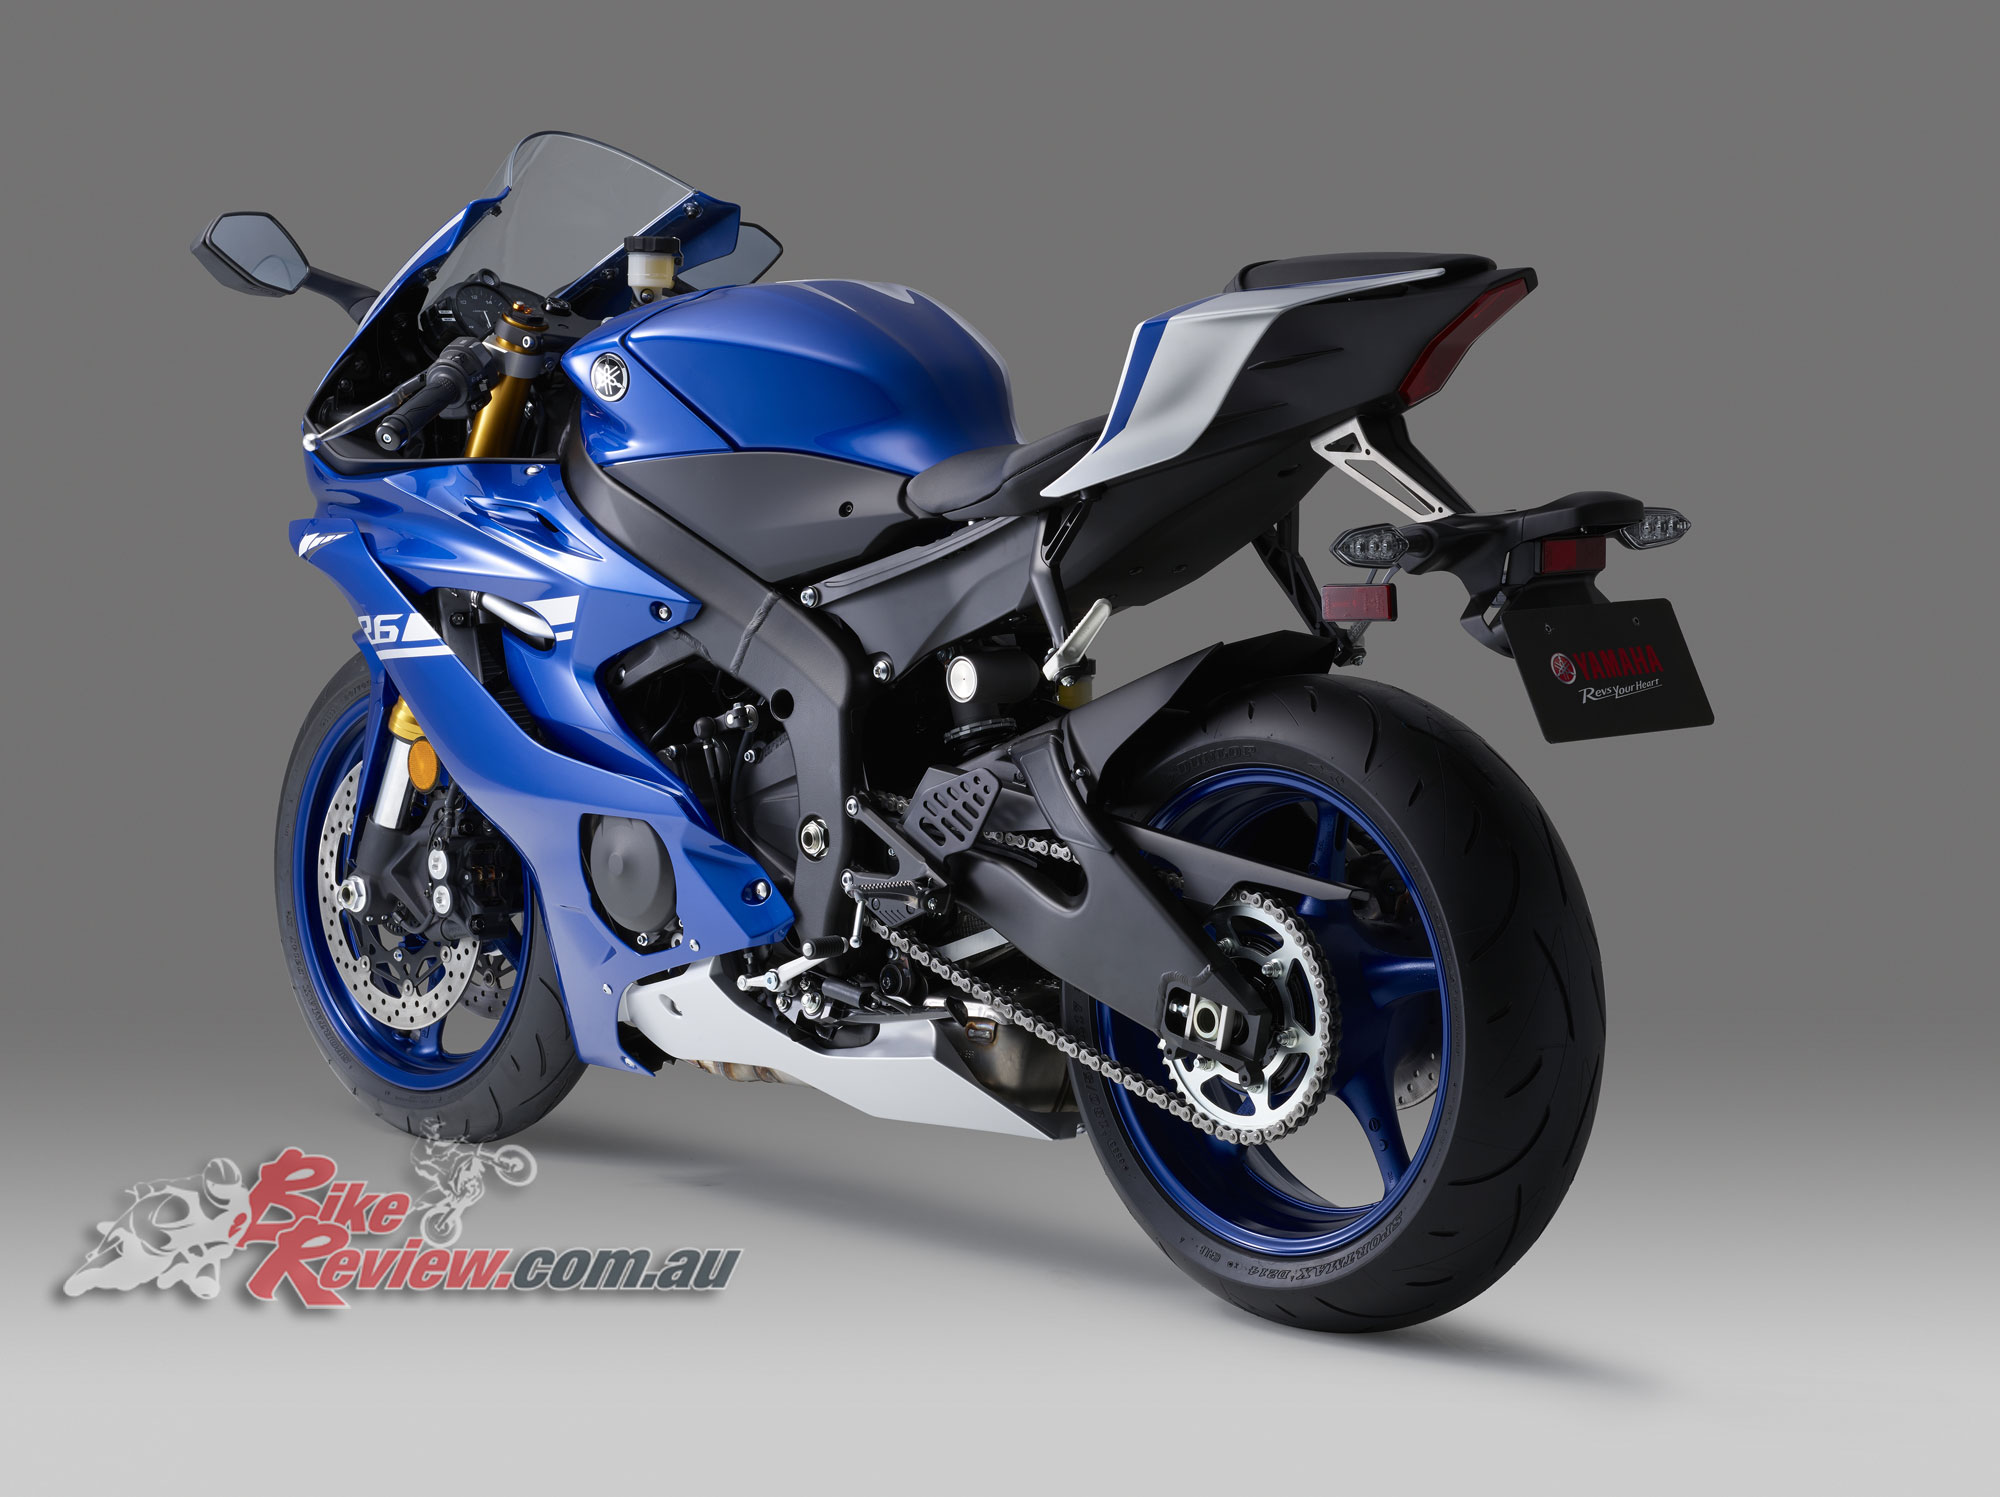 2017 yamaha yzf r6 updated bike review for Yamaha philippines price list 2017